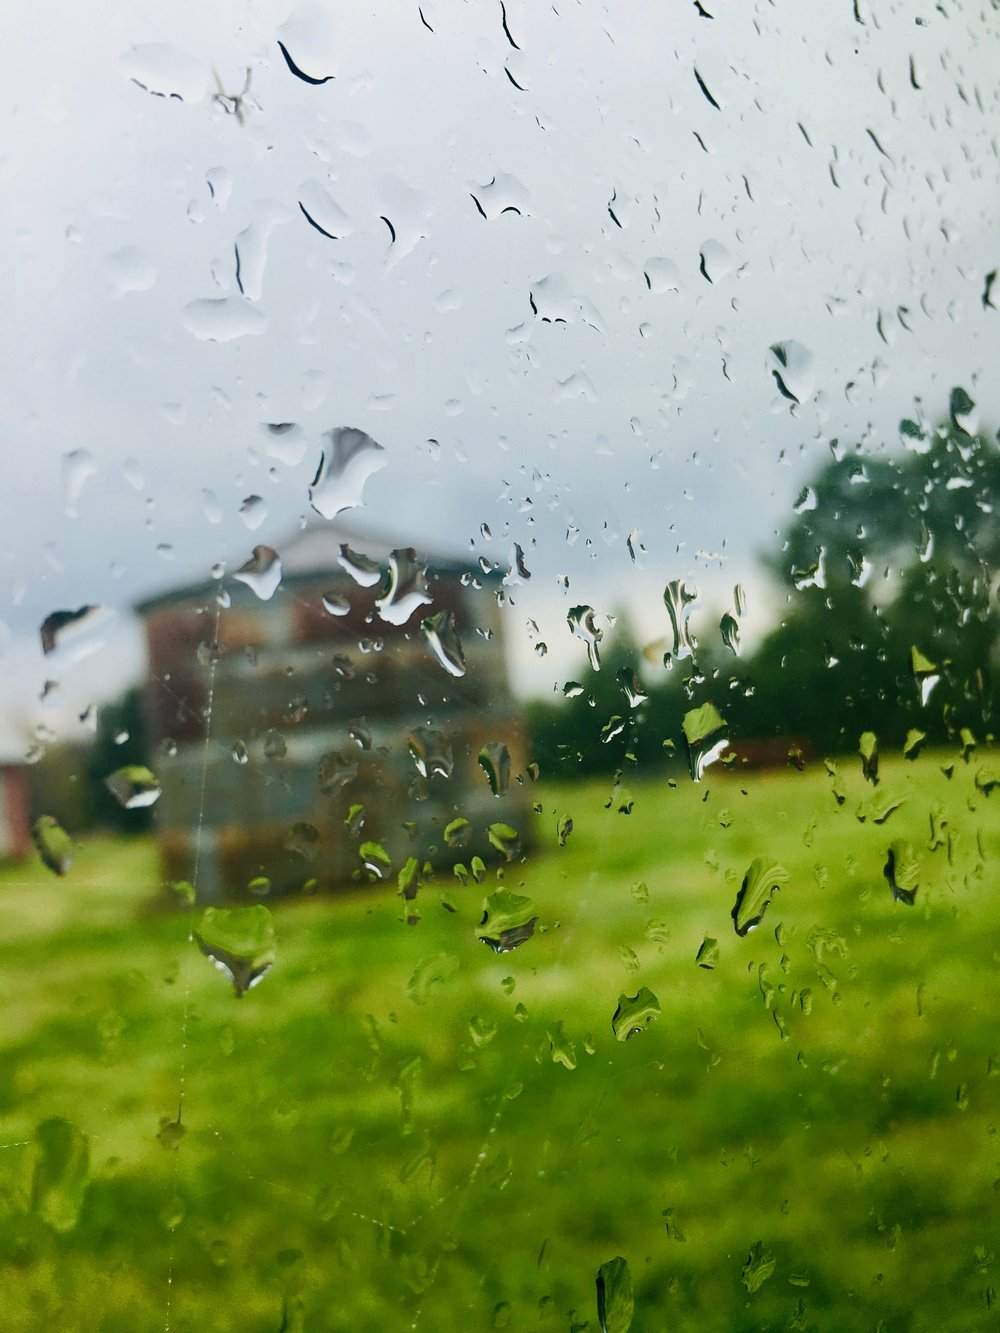 Spring Rains - While writing this lesson, the sky turned blue, the thunder rolled, and warm rain splattered the windows, all playing a delightful melody. Now I want a nap.